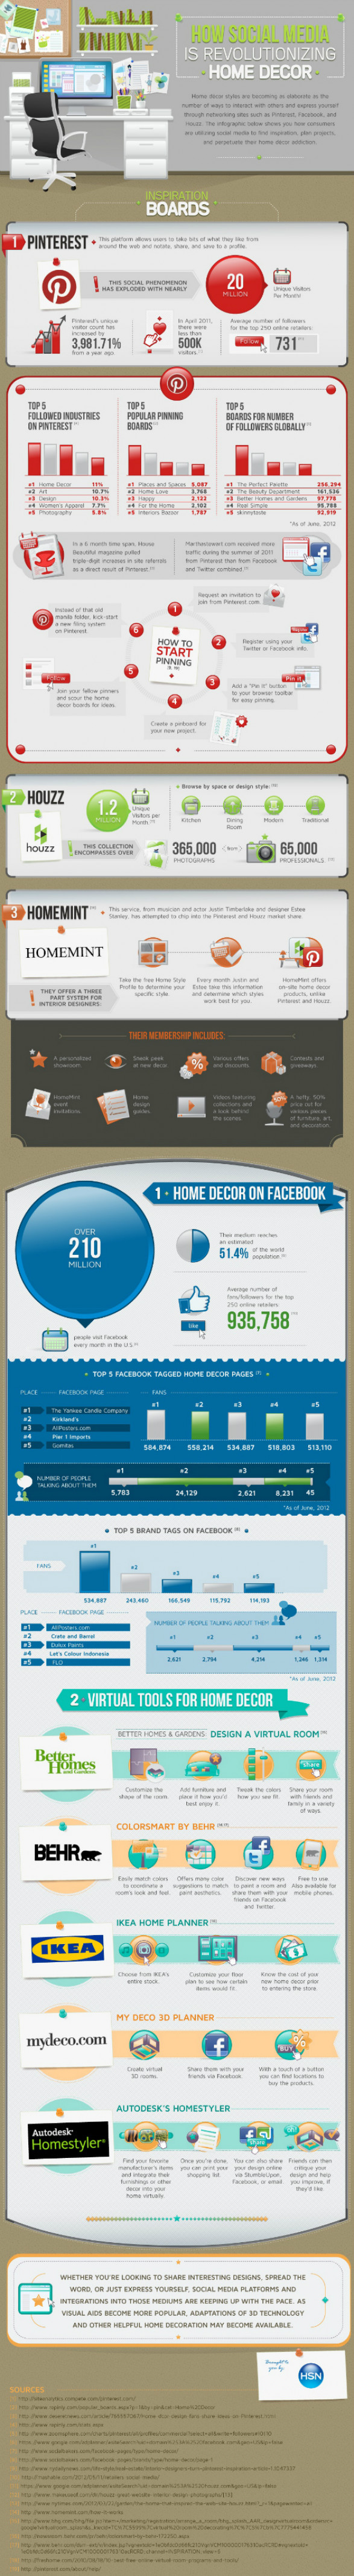 pinterest home decor infographic